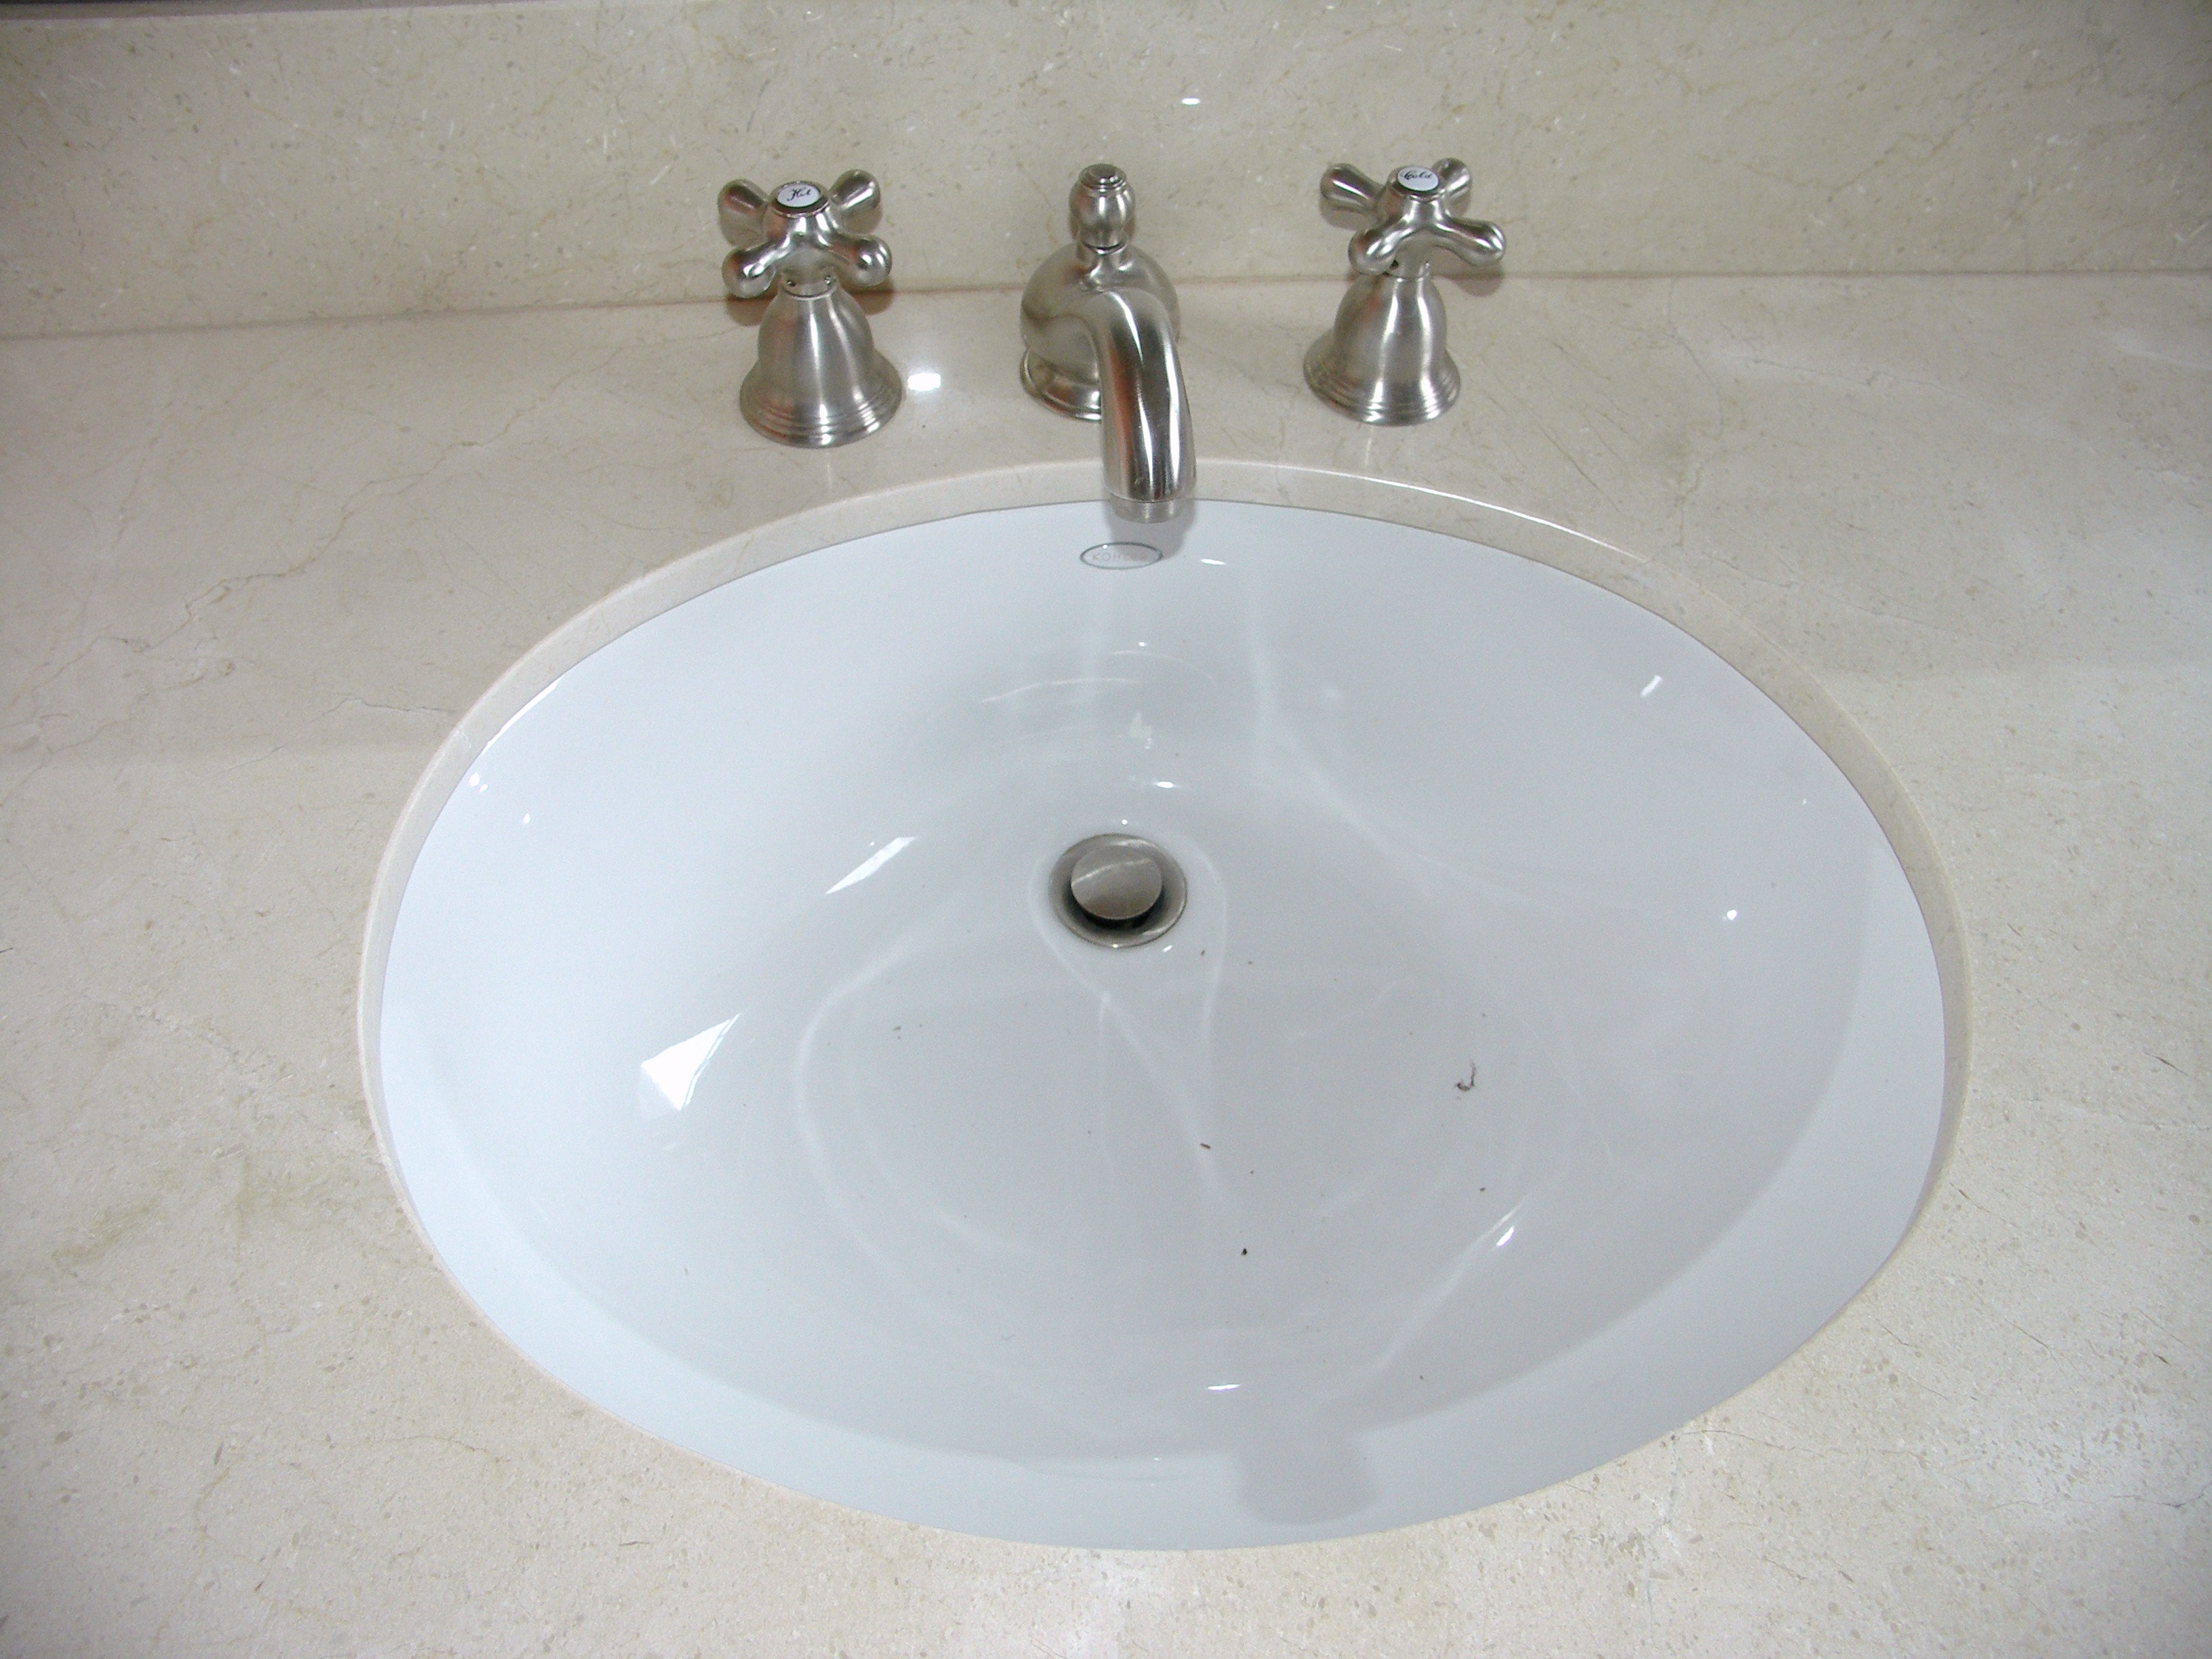 Excellent Undermount Bathroom Sinks with Faucets 3264 x 2448 · 1328 kB · jpeg